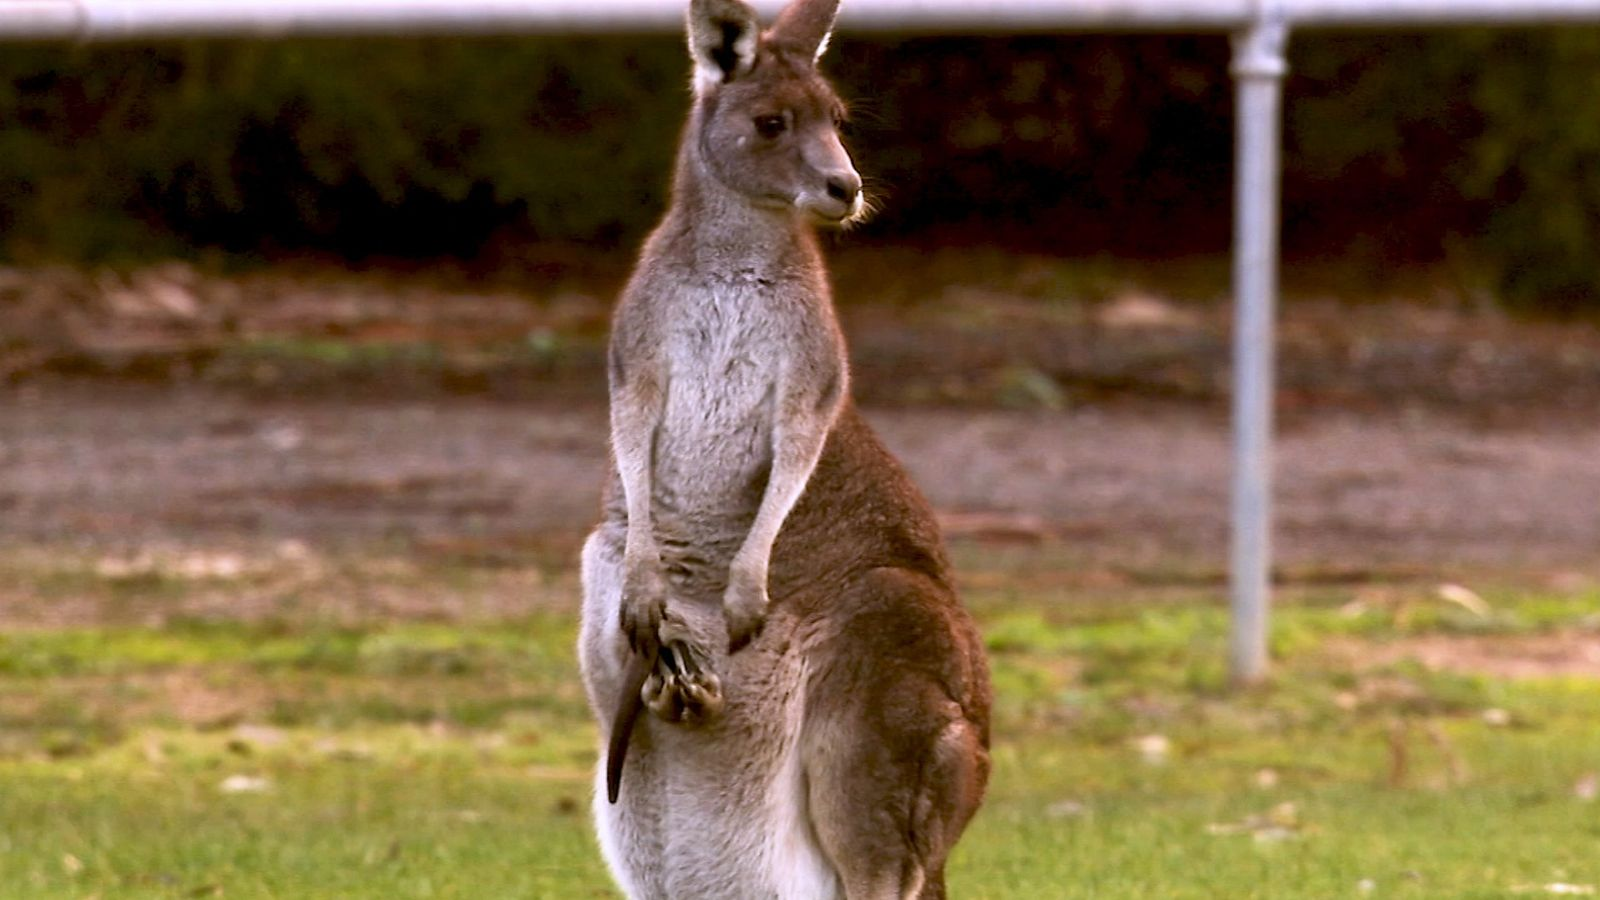 Kangaroos: Get to know the world's largest hopping animals